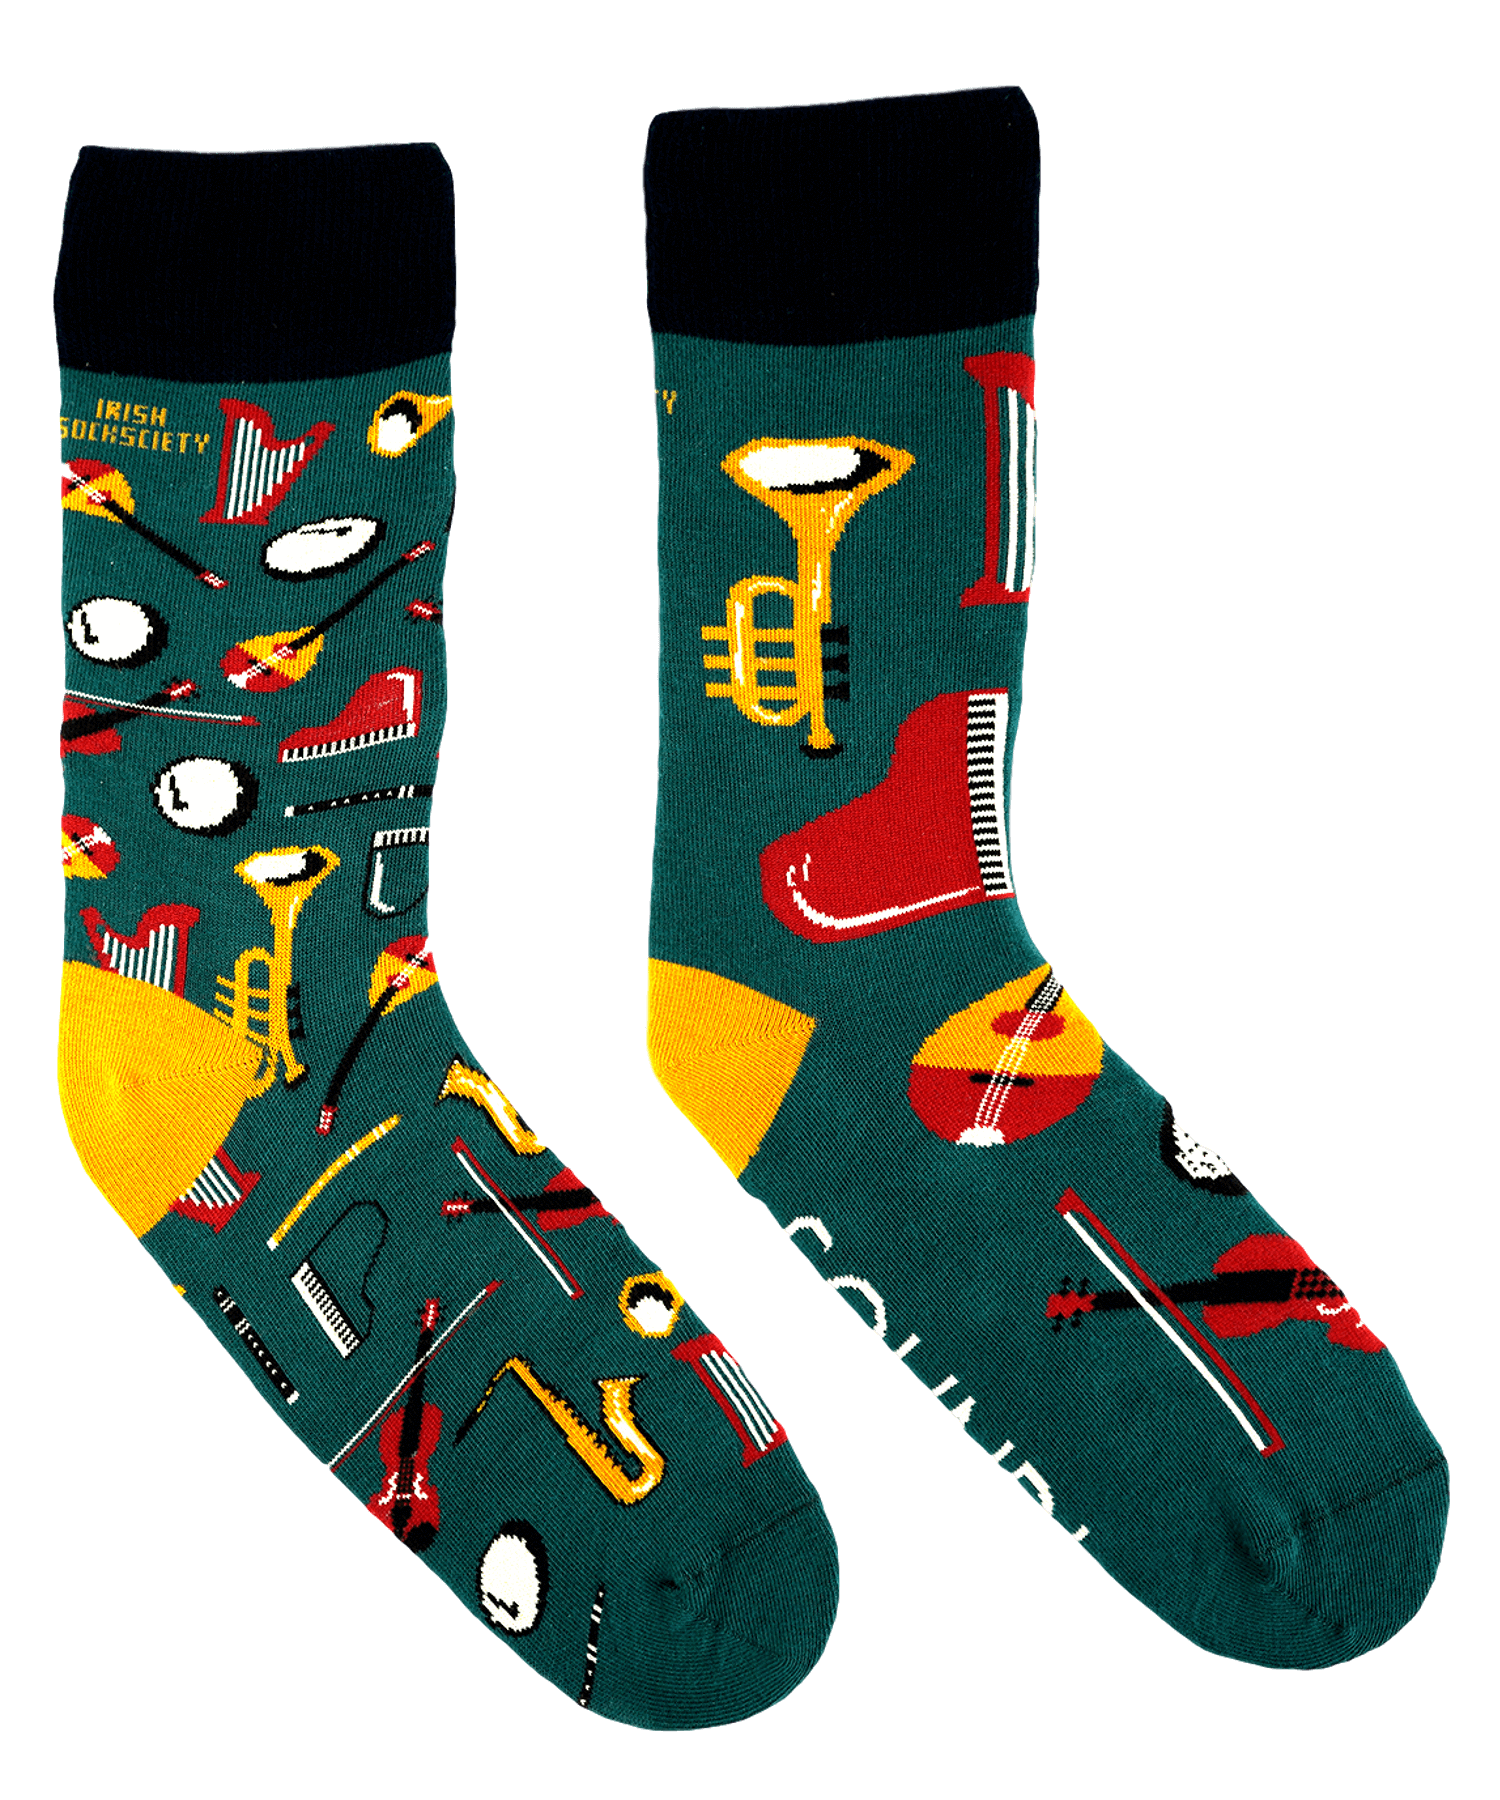 Socks - Sound Session - [Irish Socksciety] - Socks & Slippers - Irish Gifts